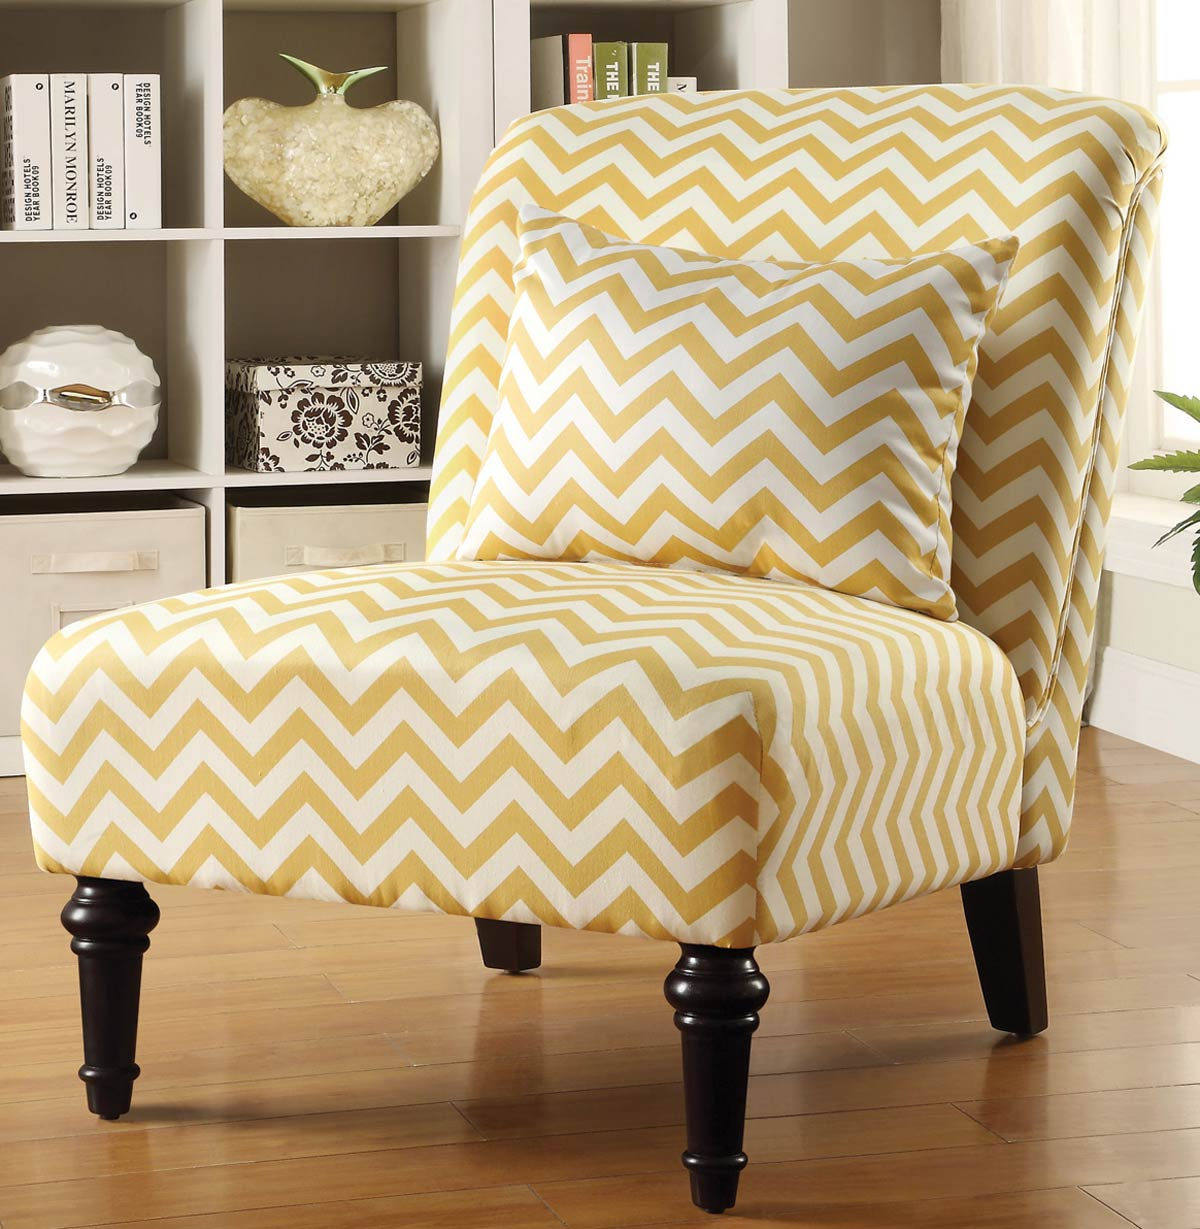 Coaster 902019 Accent Chair - White/Yellow Chevron